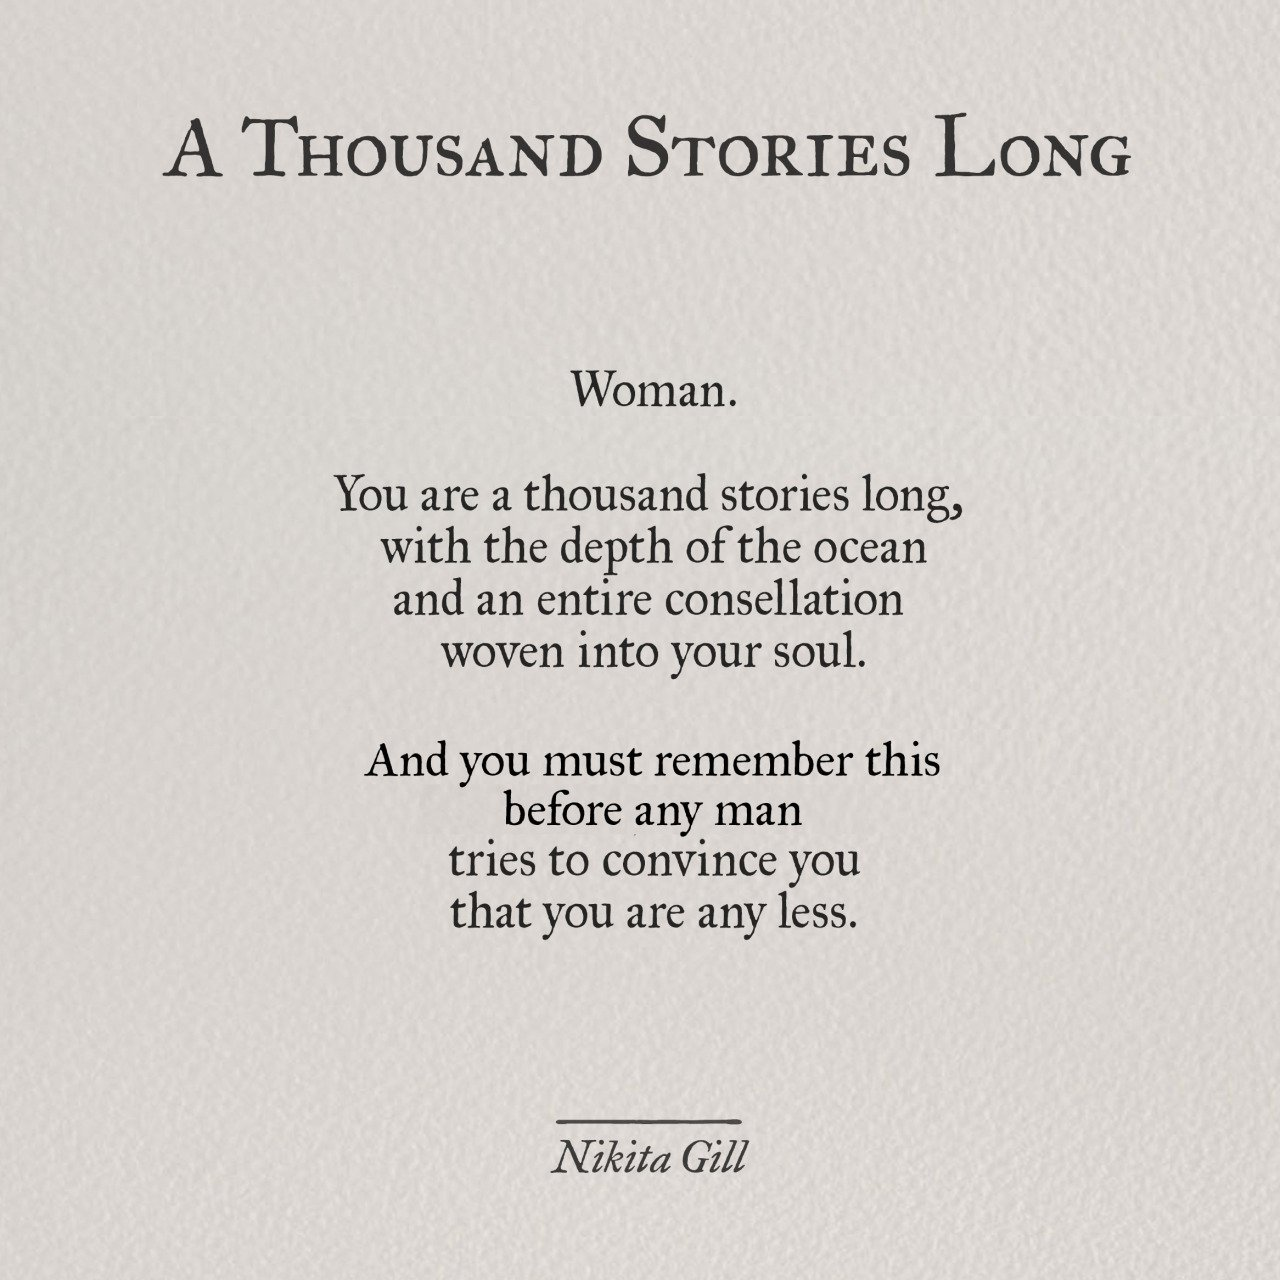 27 Poems By Nikita Gill That Capture The Whirlwind Of